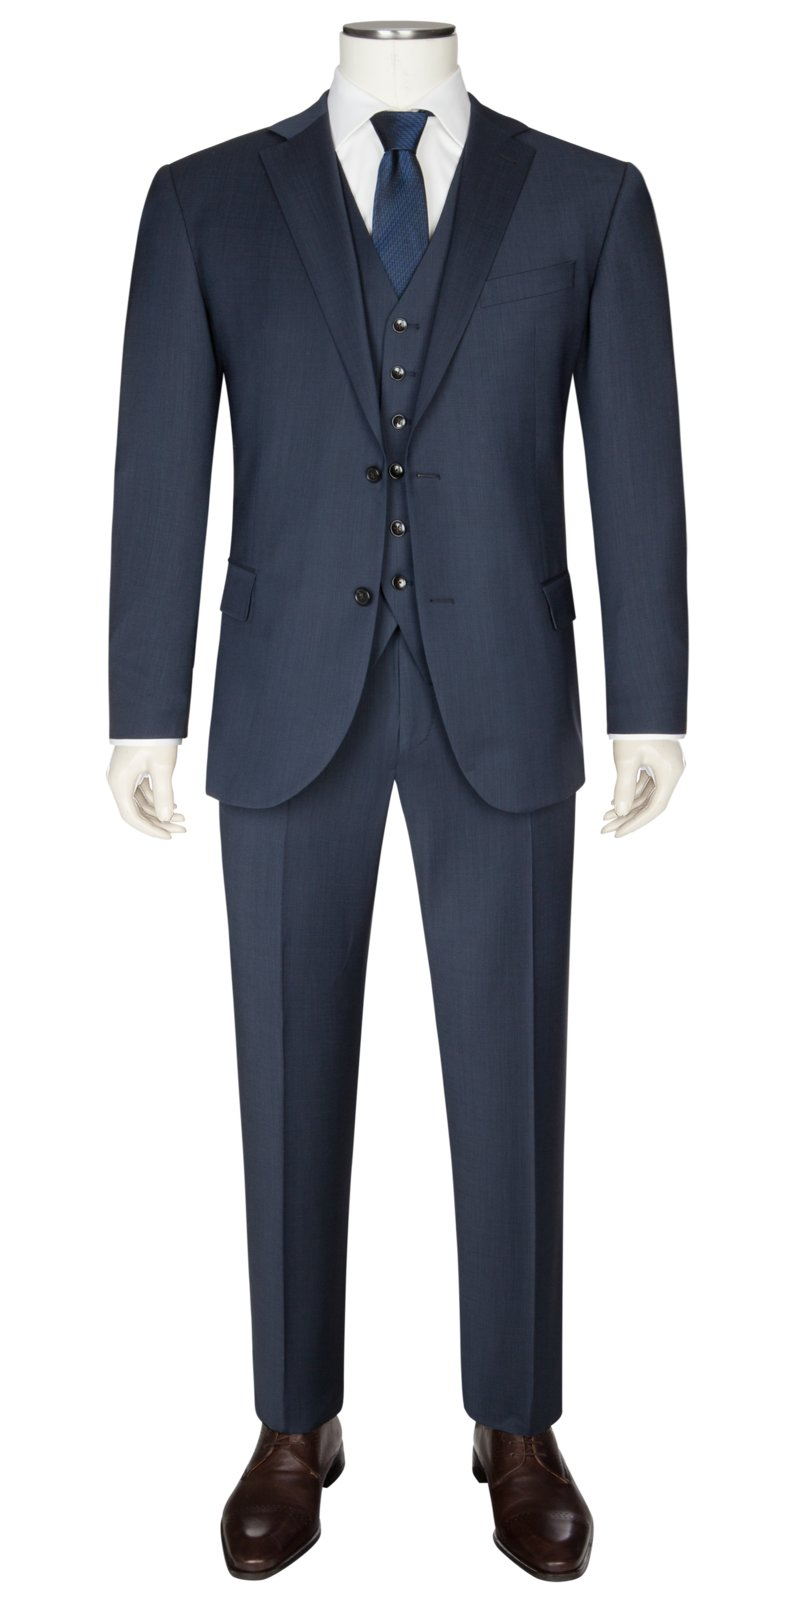 Joop! Mix & match suit separates with gilet BLUE in plus size